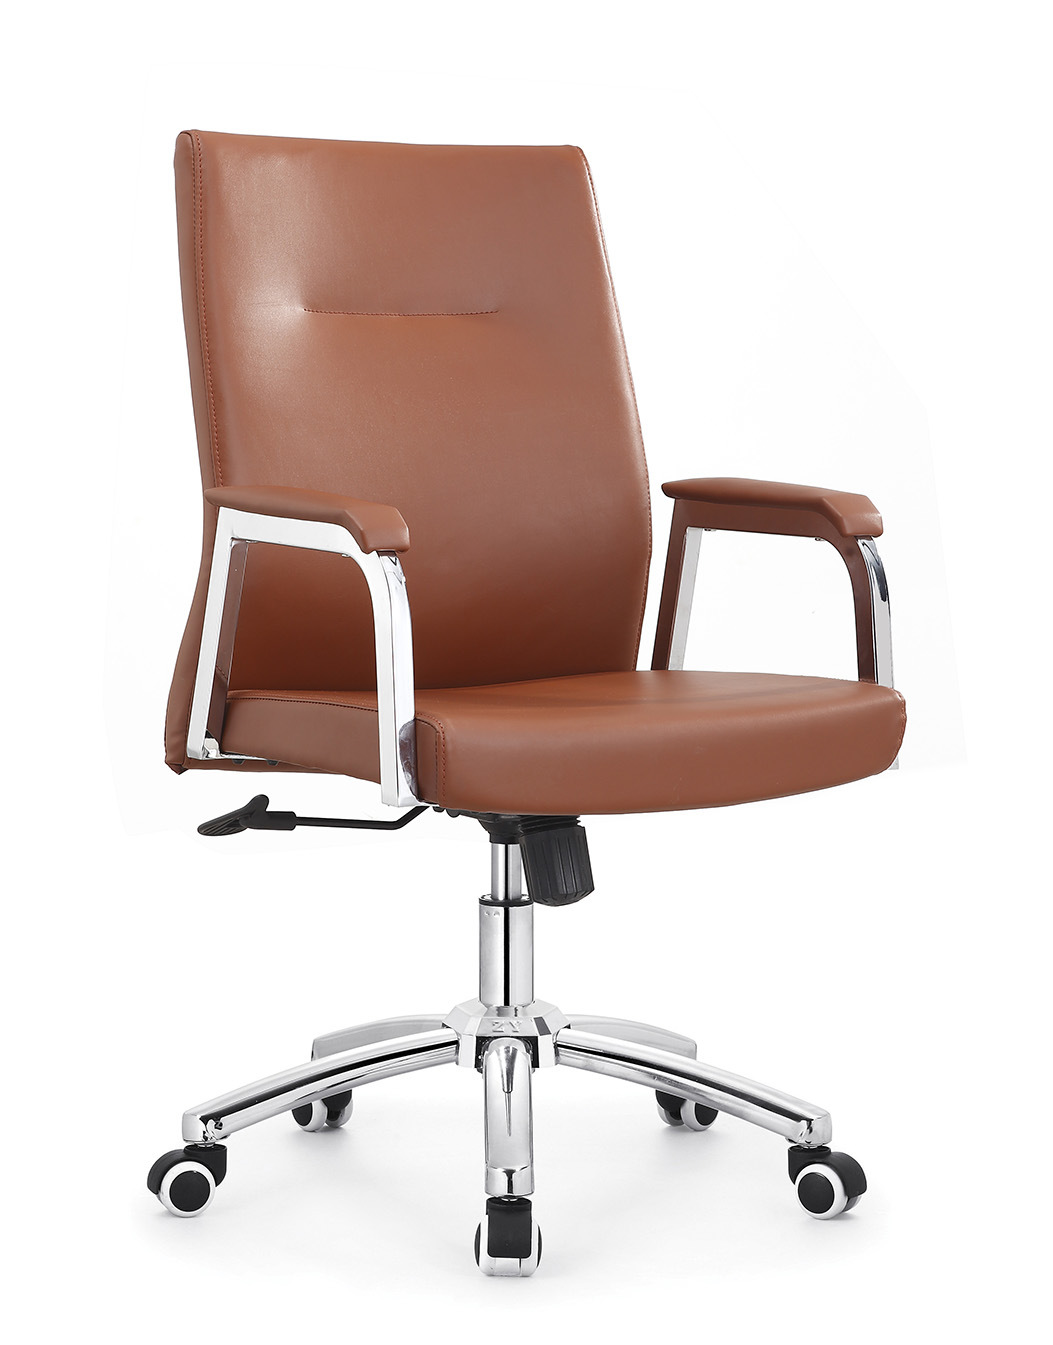 Picture of: China Cheap Price Waiting Gaming Desk Swivel Leather Office Chair Office Furniture B685 Photos Pictures Made In China Com